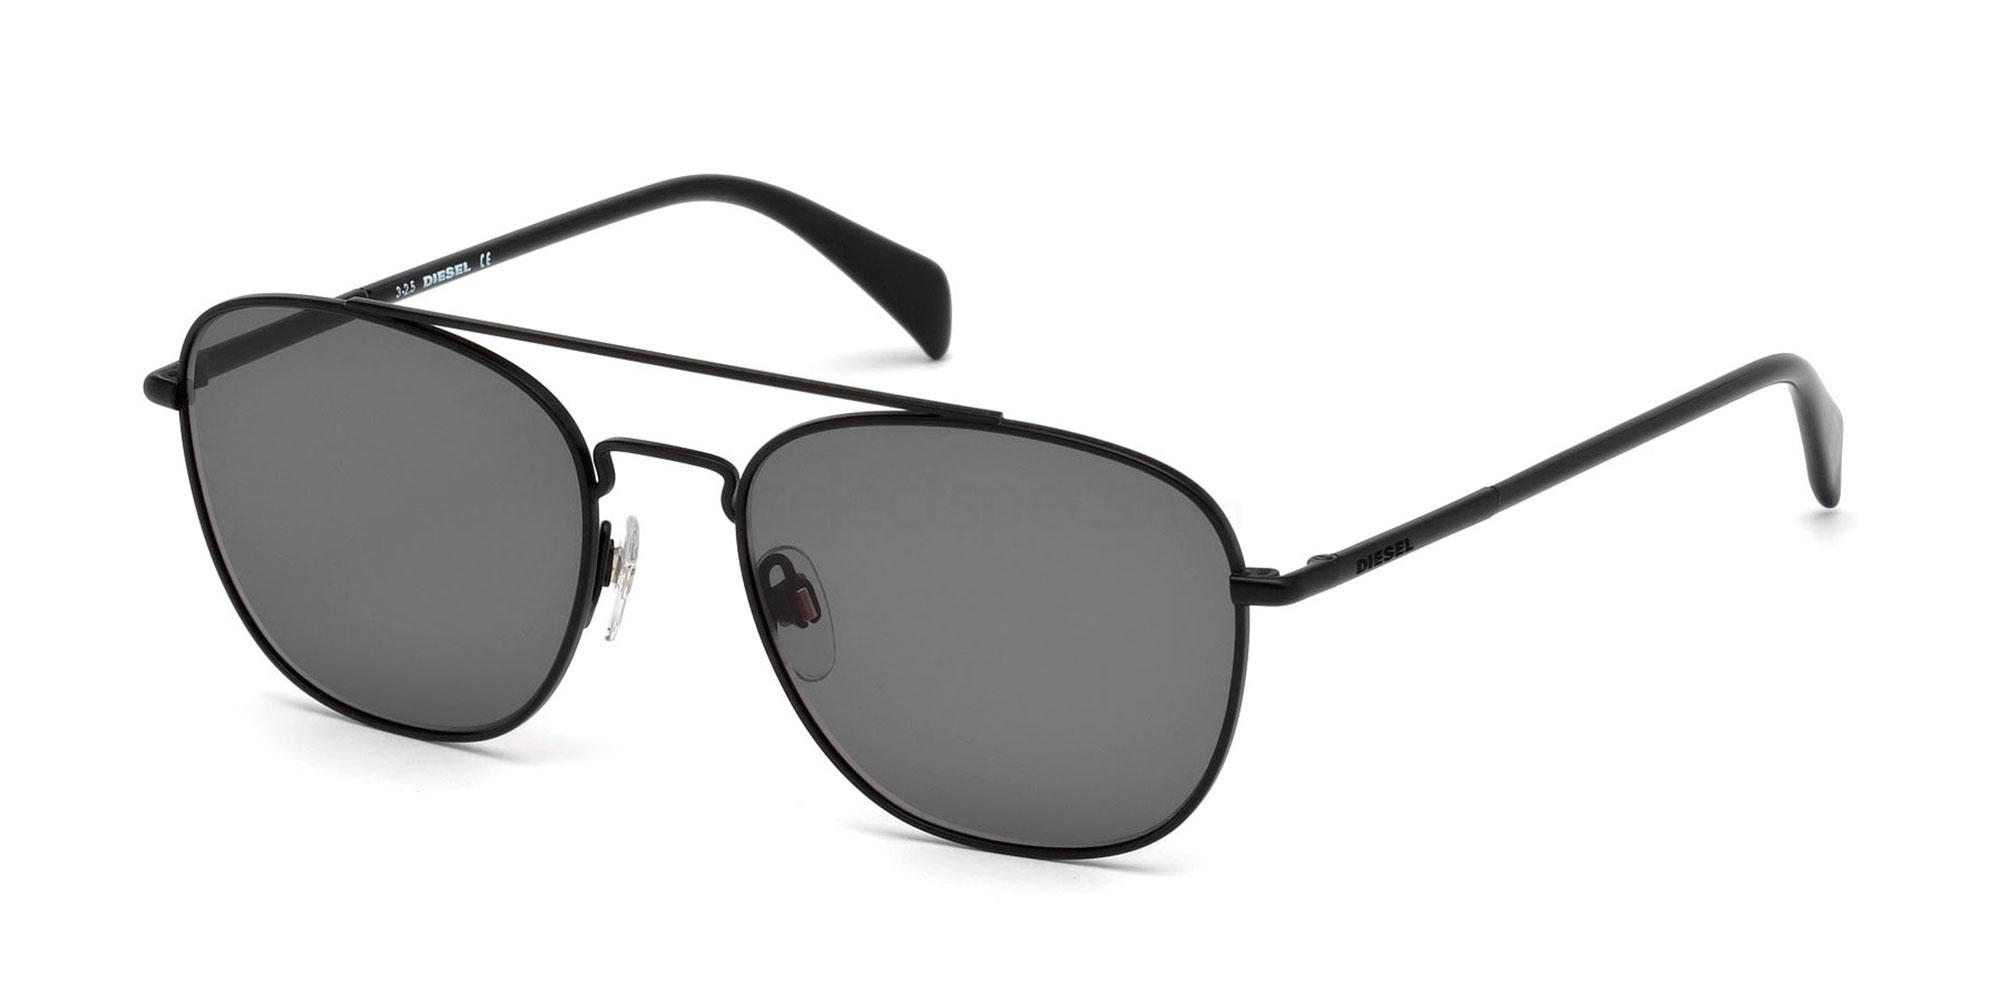 02A DL0194 Sunglasses, Diesel